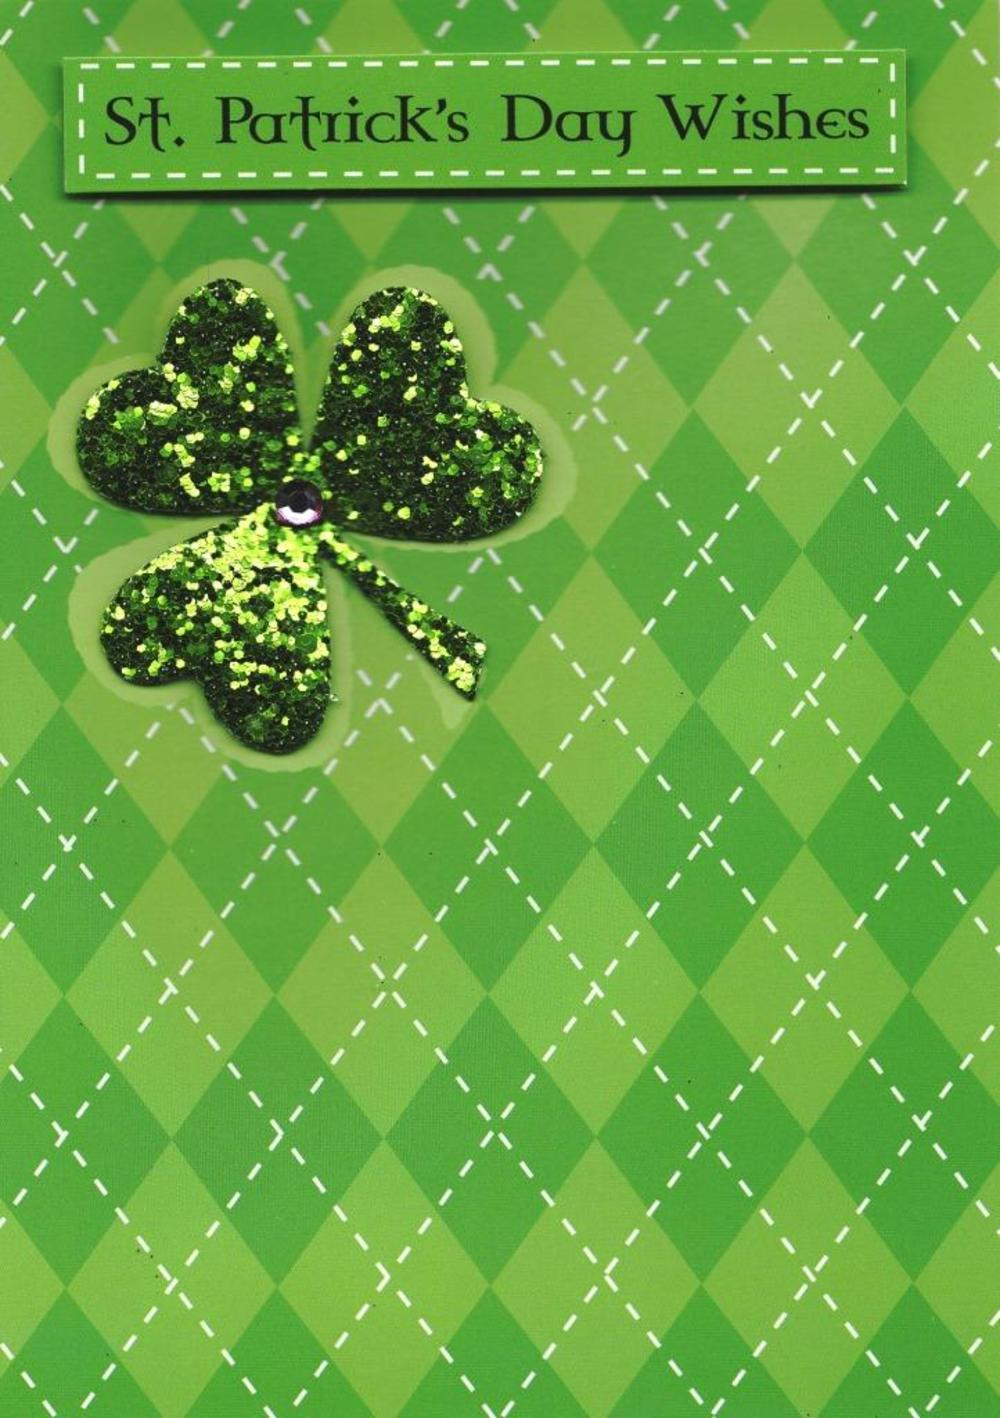 St. Patrick's Day Wishes Greeting Card